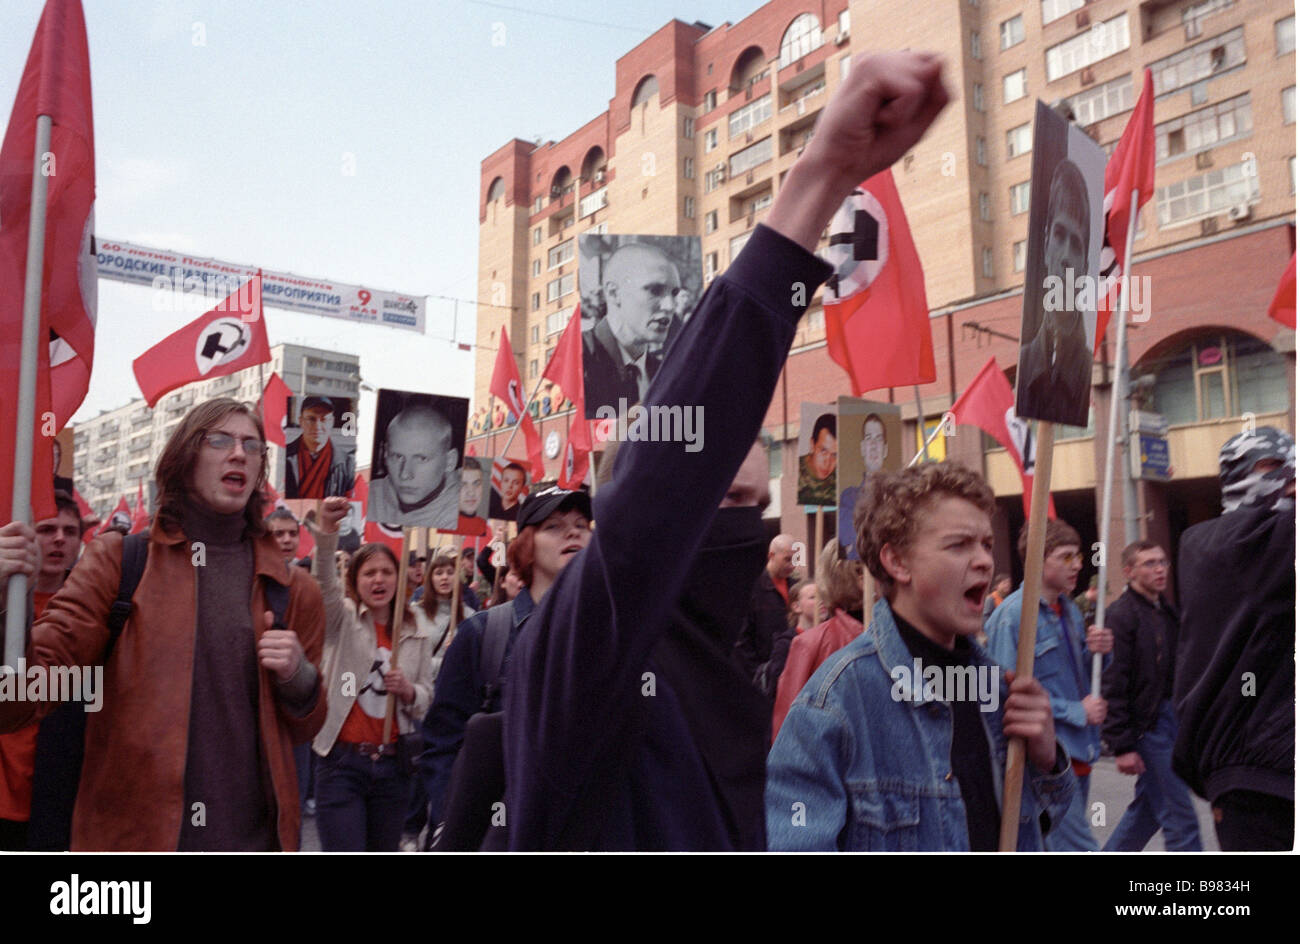 Left wing parties and organizations at May Day demonstration - Stock Image